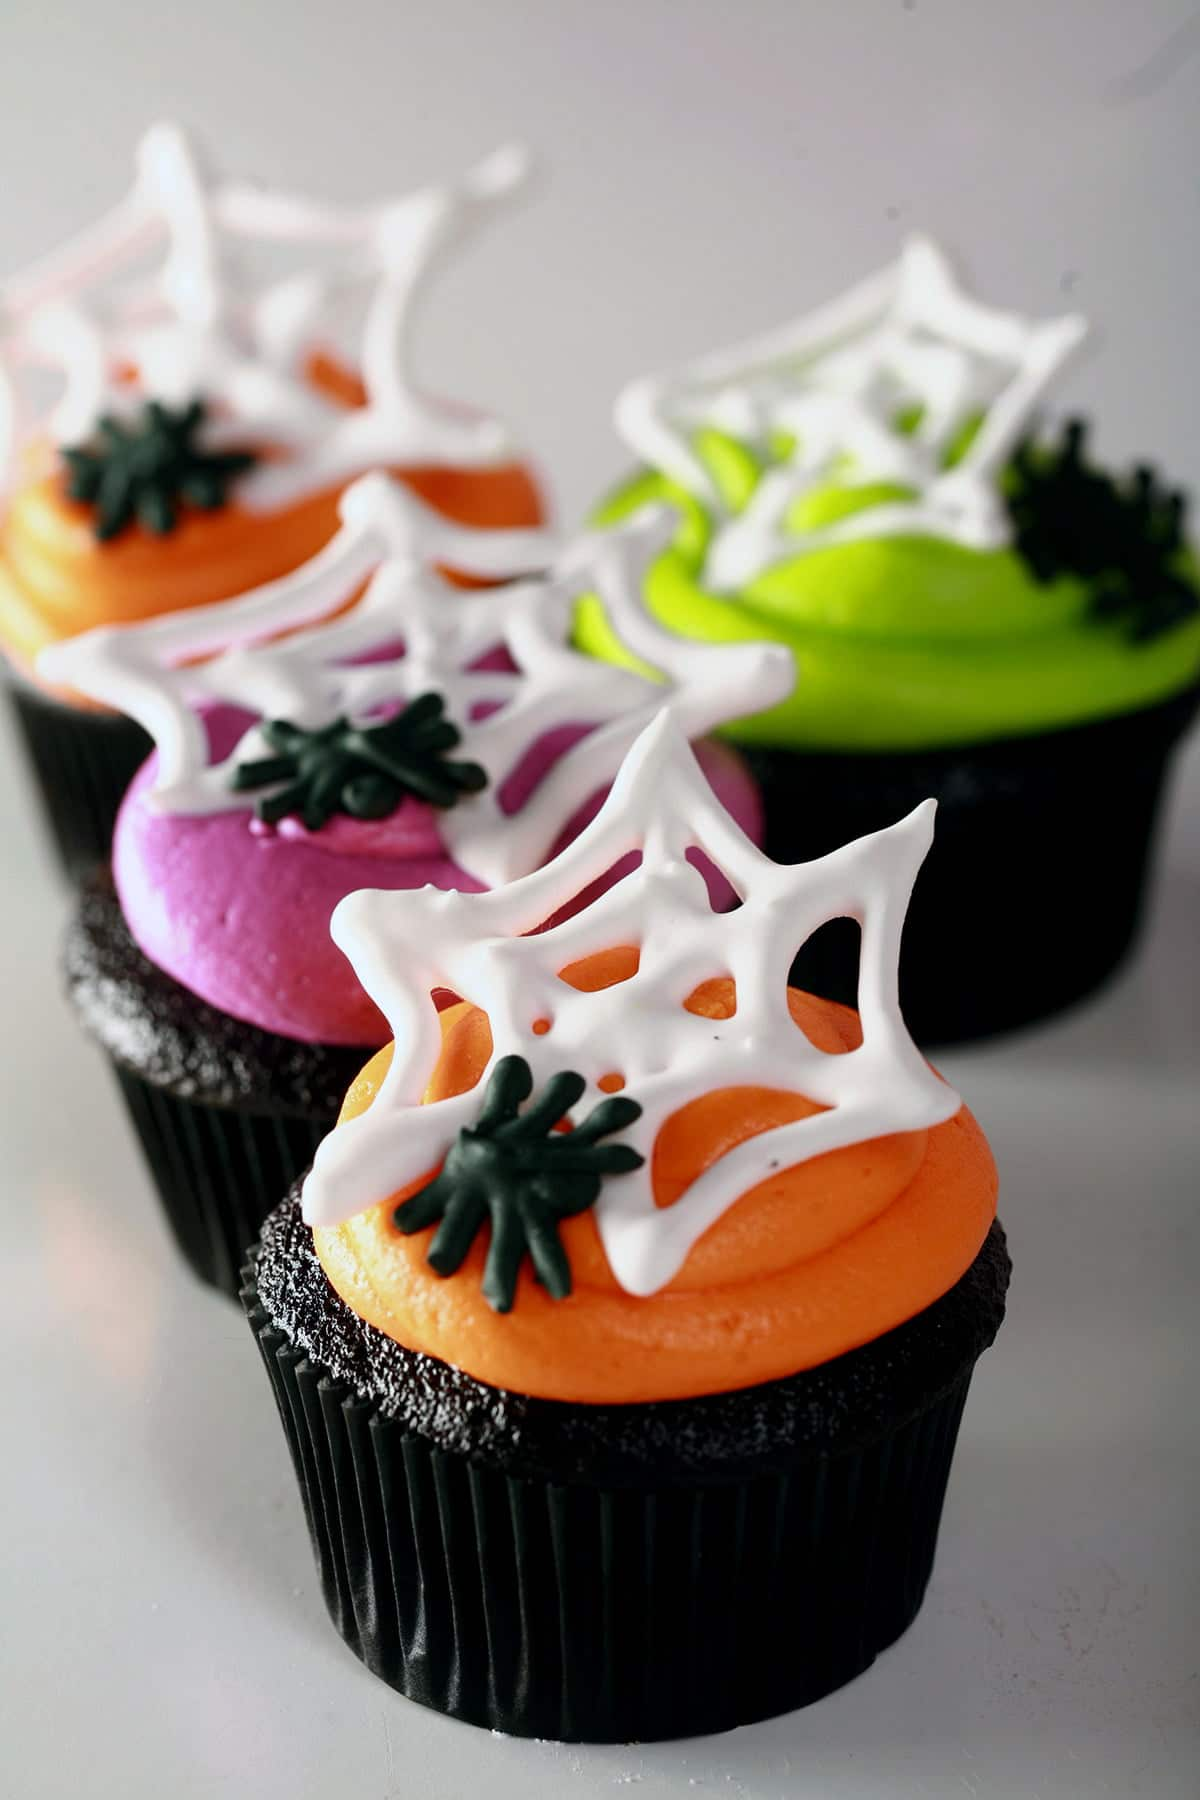 4 black velvet cupcakes frosted with brightly coloured icing - lime green, electric purple, and orange - are shown topped with royal icing spider webs and spiders.